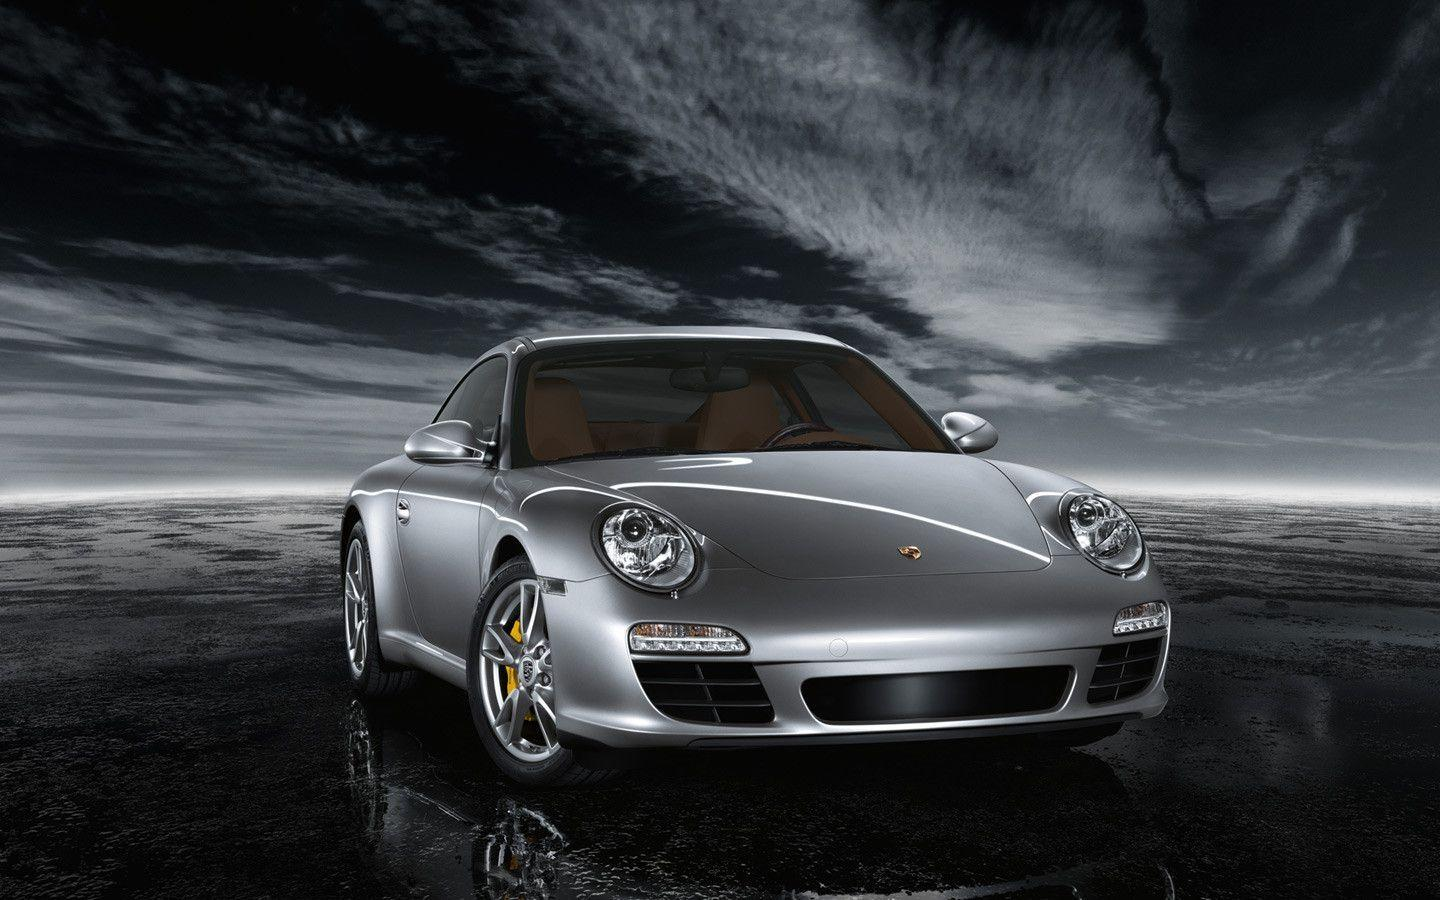 Porsche 911 Car Wallpaper › Findorget.